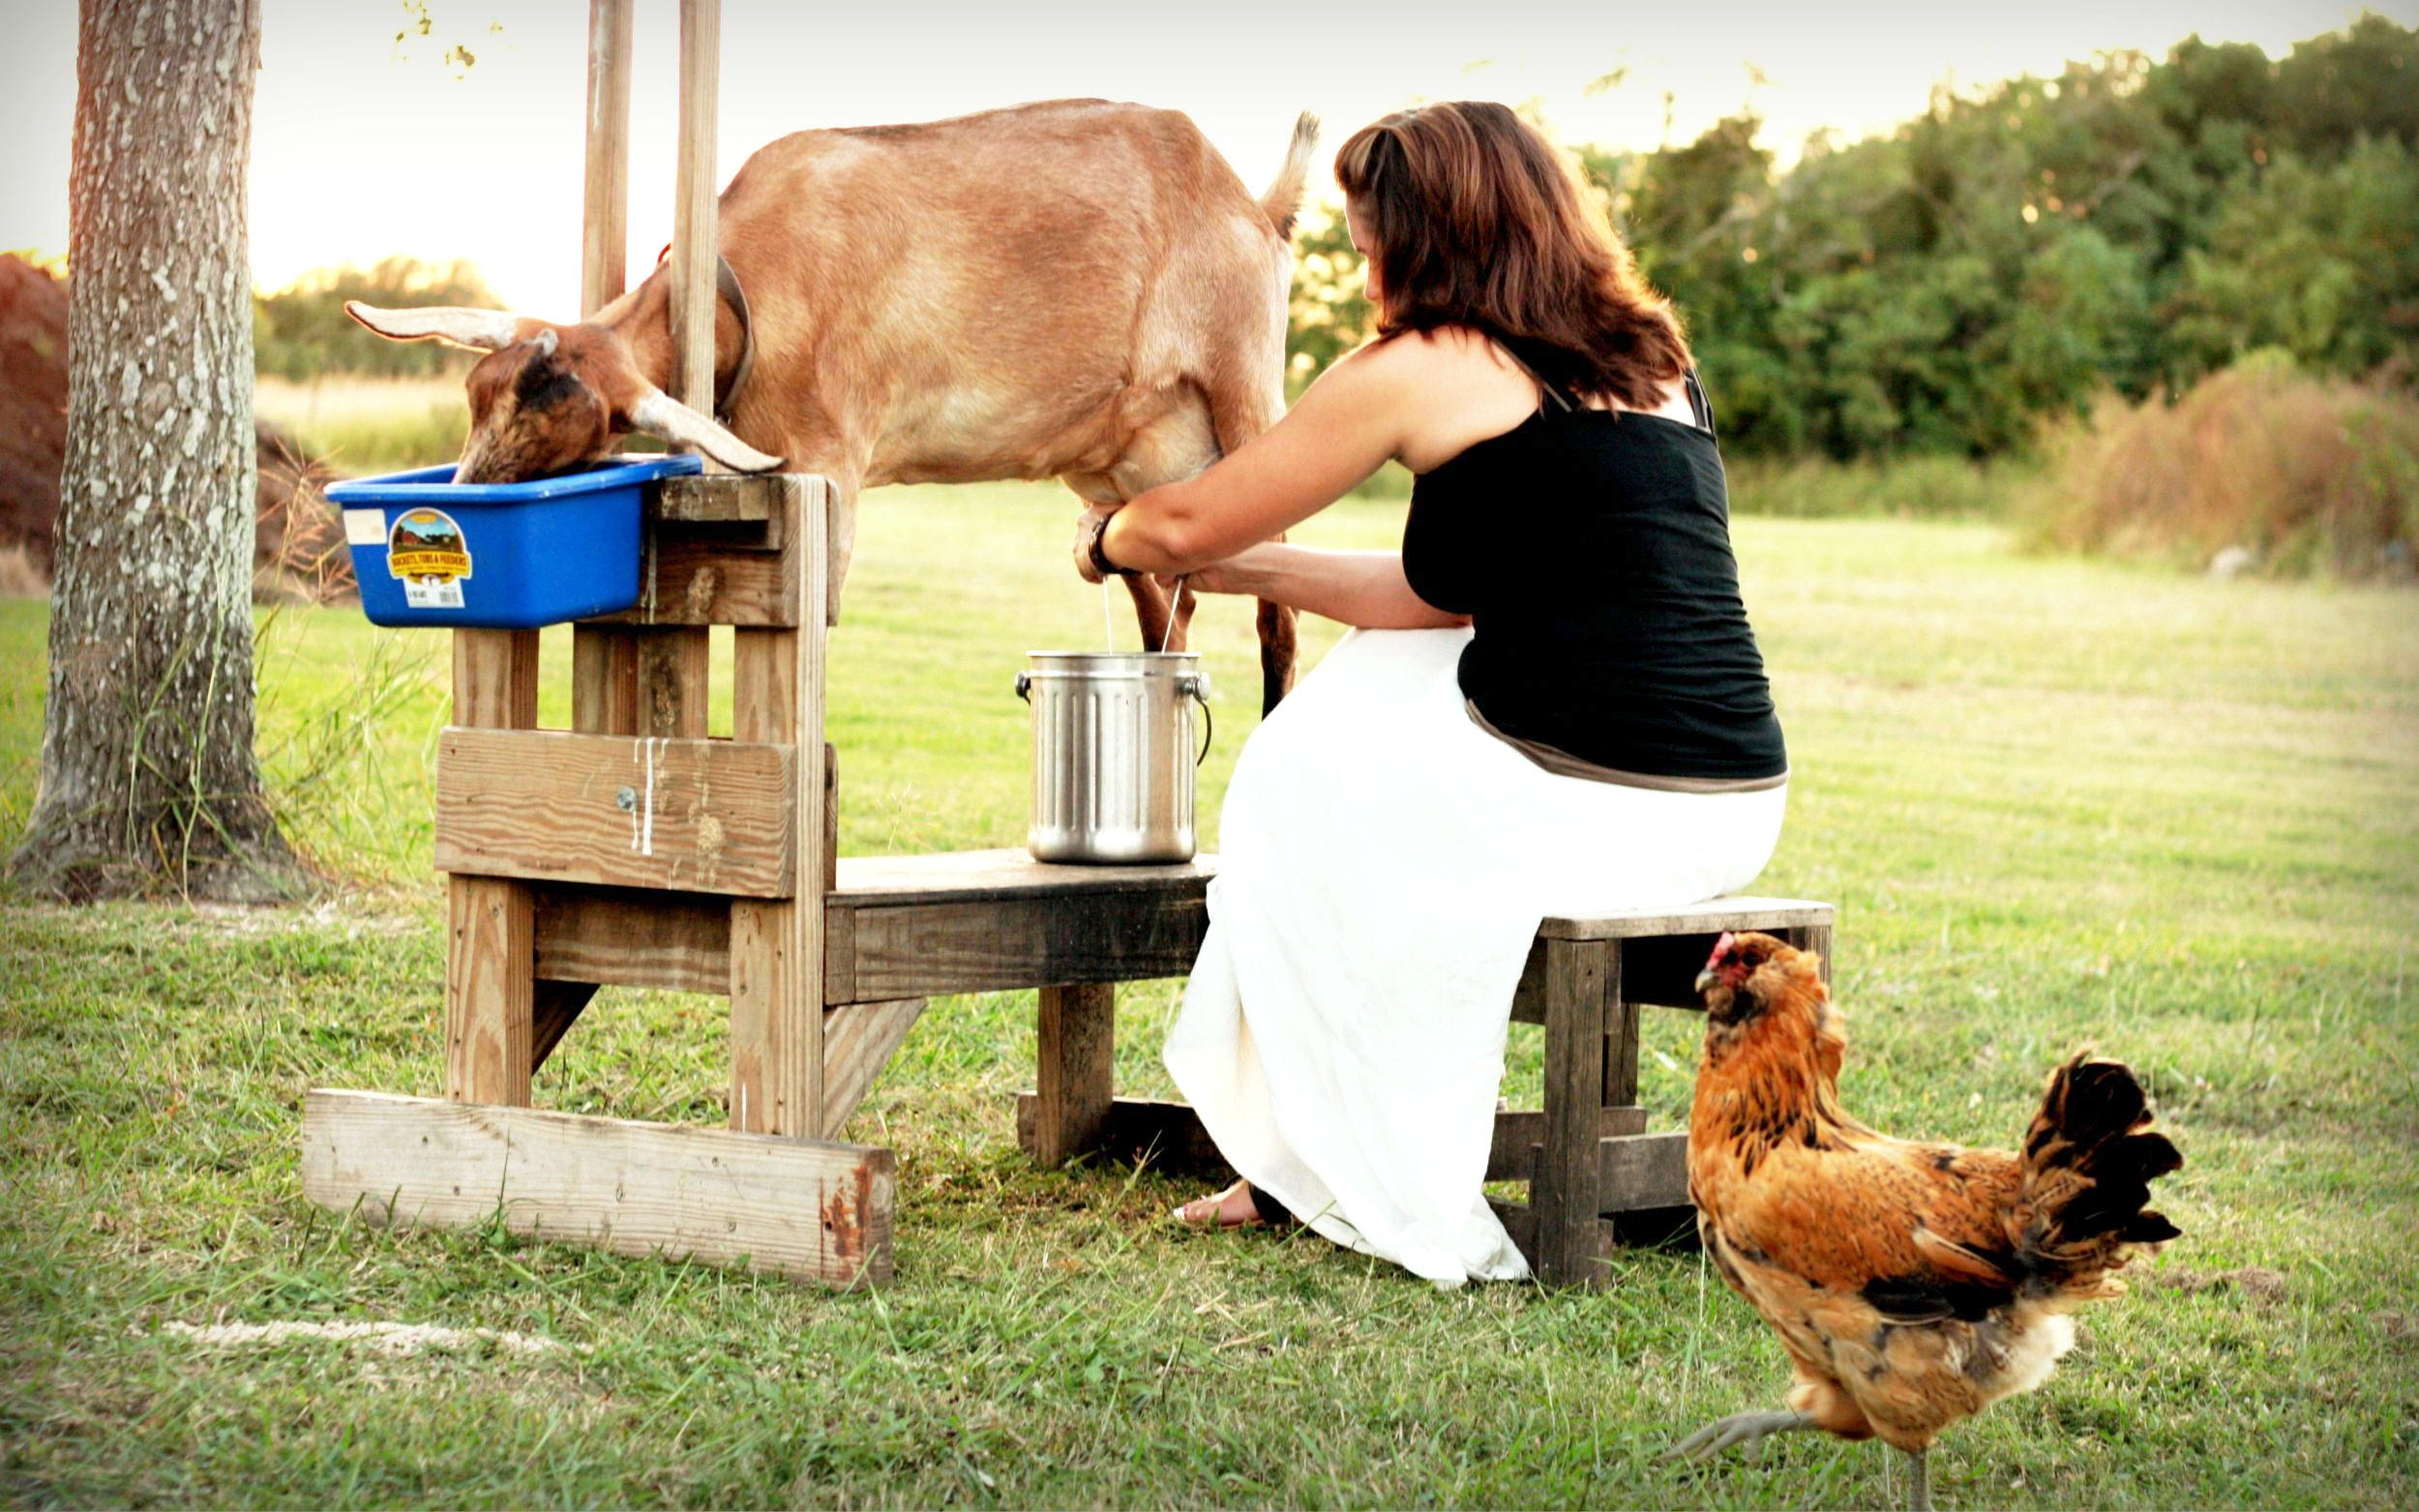 A day in the life of a goat-milking, chicken-ranching, child-chasing mother of three small humans.